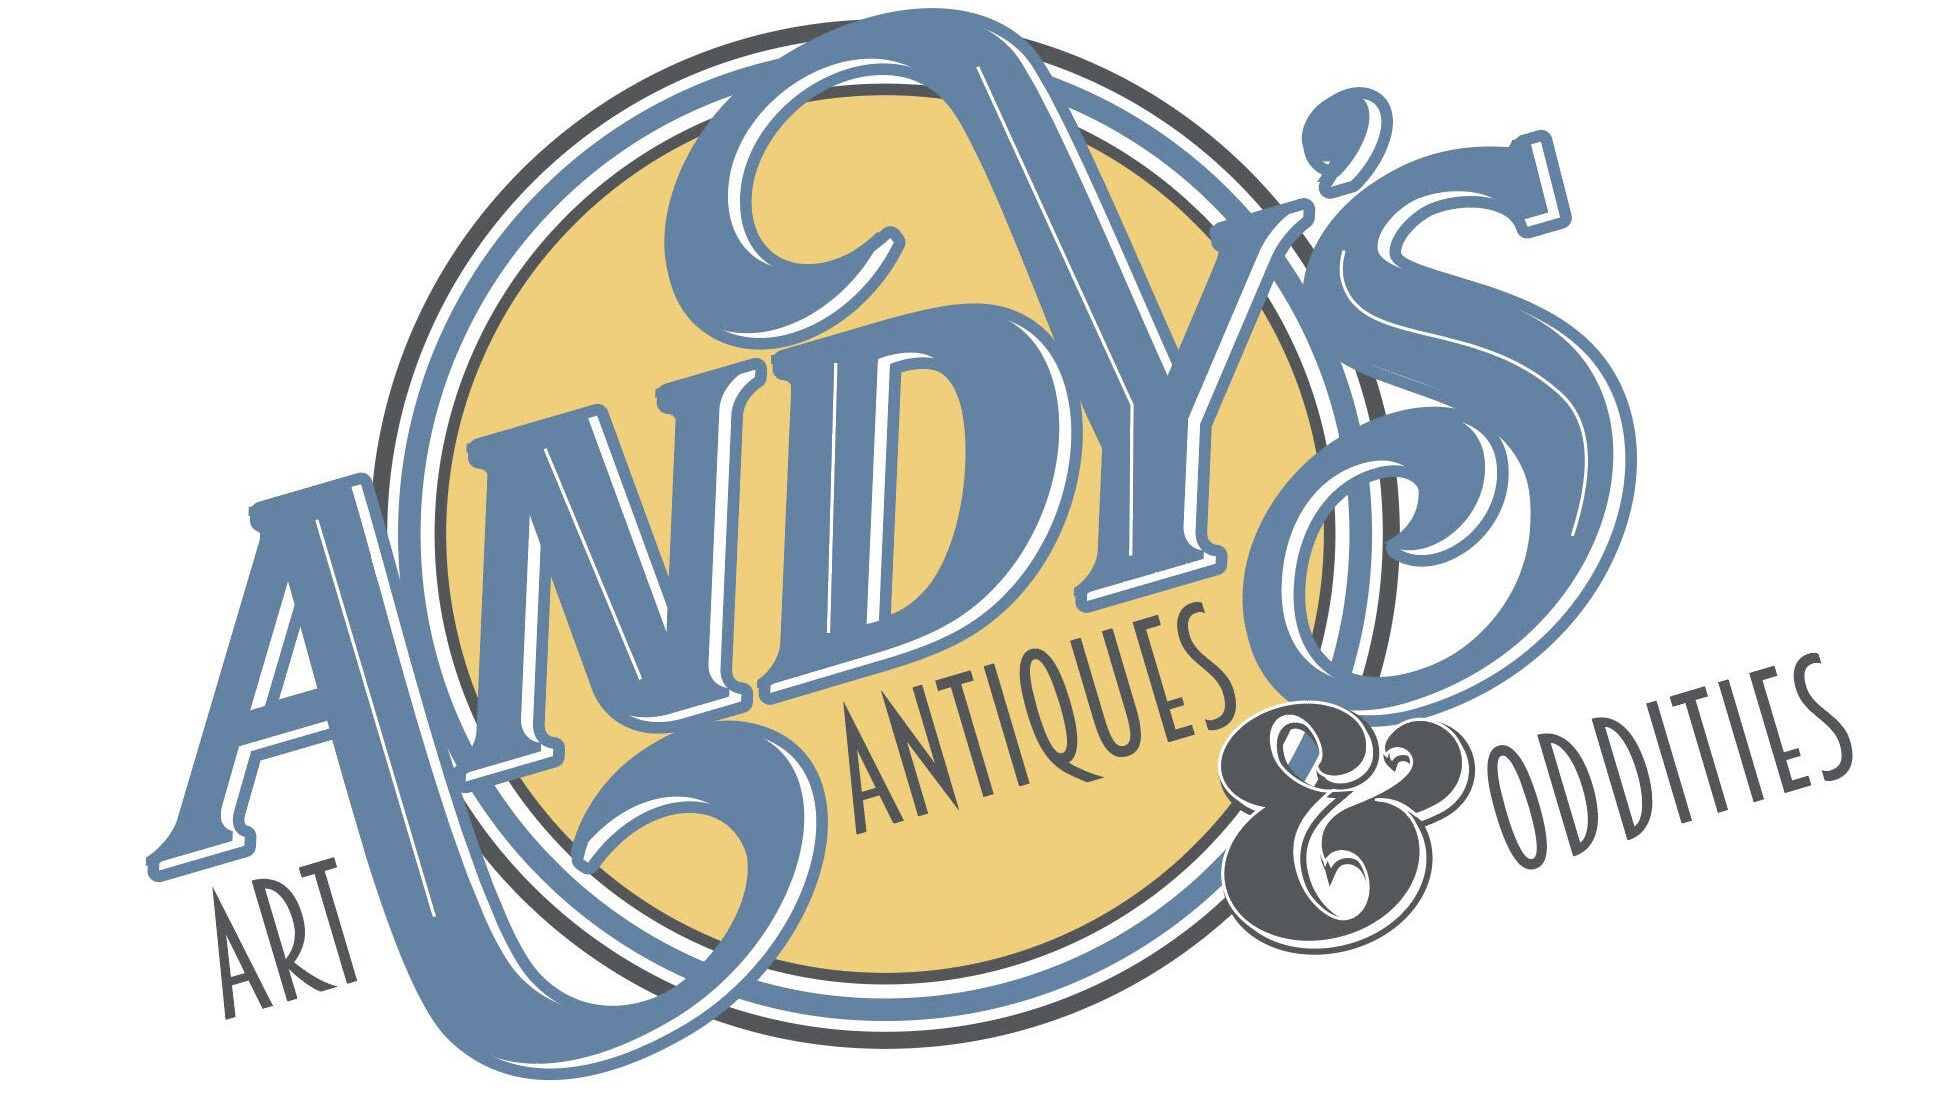 Andy's Art Antiques & Oddities